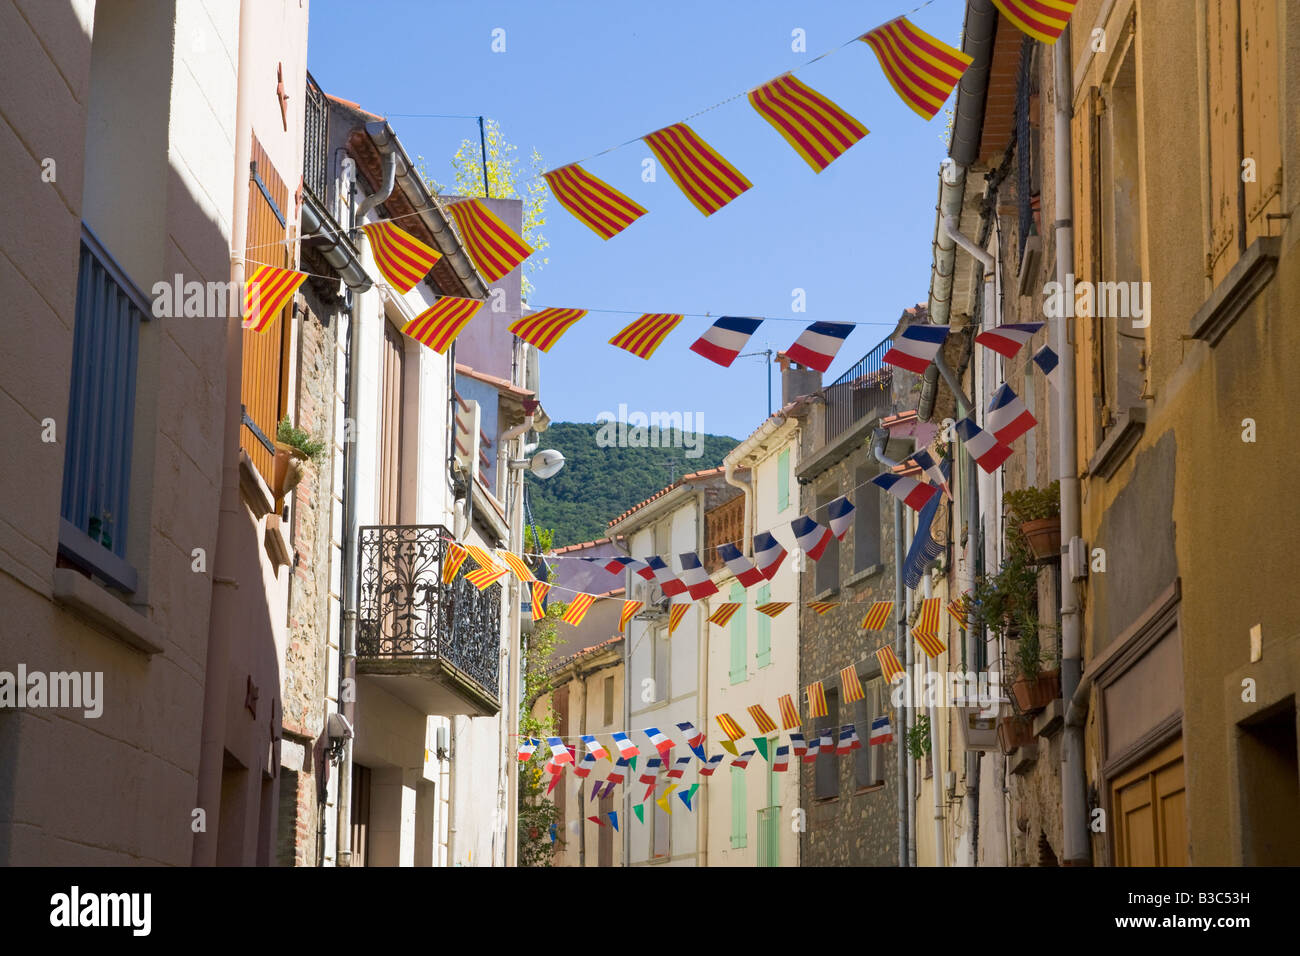 A street is decorated with flags and streamers in both Catalonian and French colours for the French national holiday - Stock Image